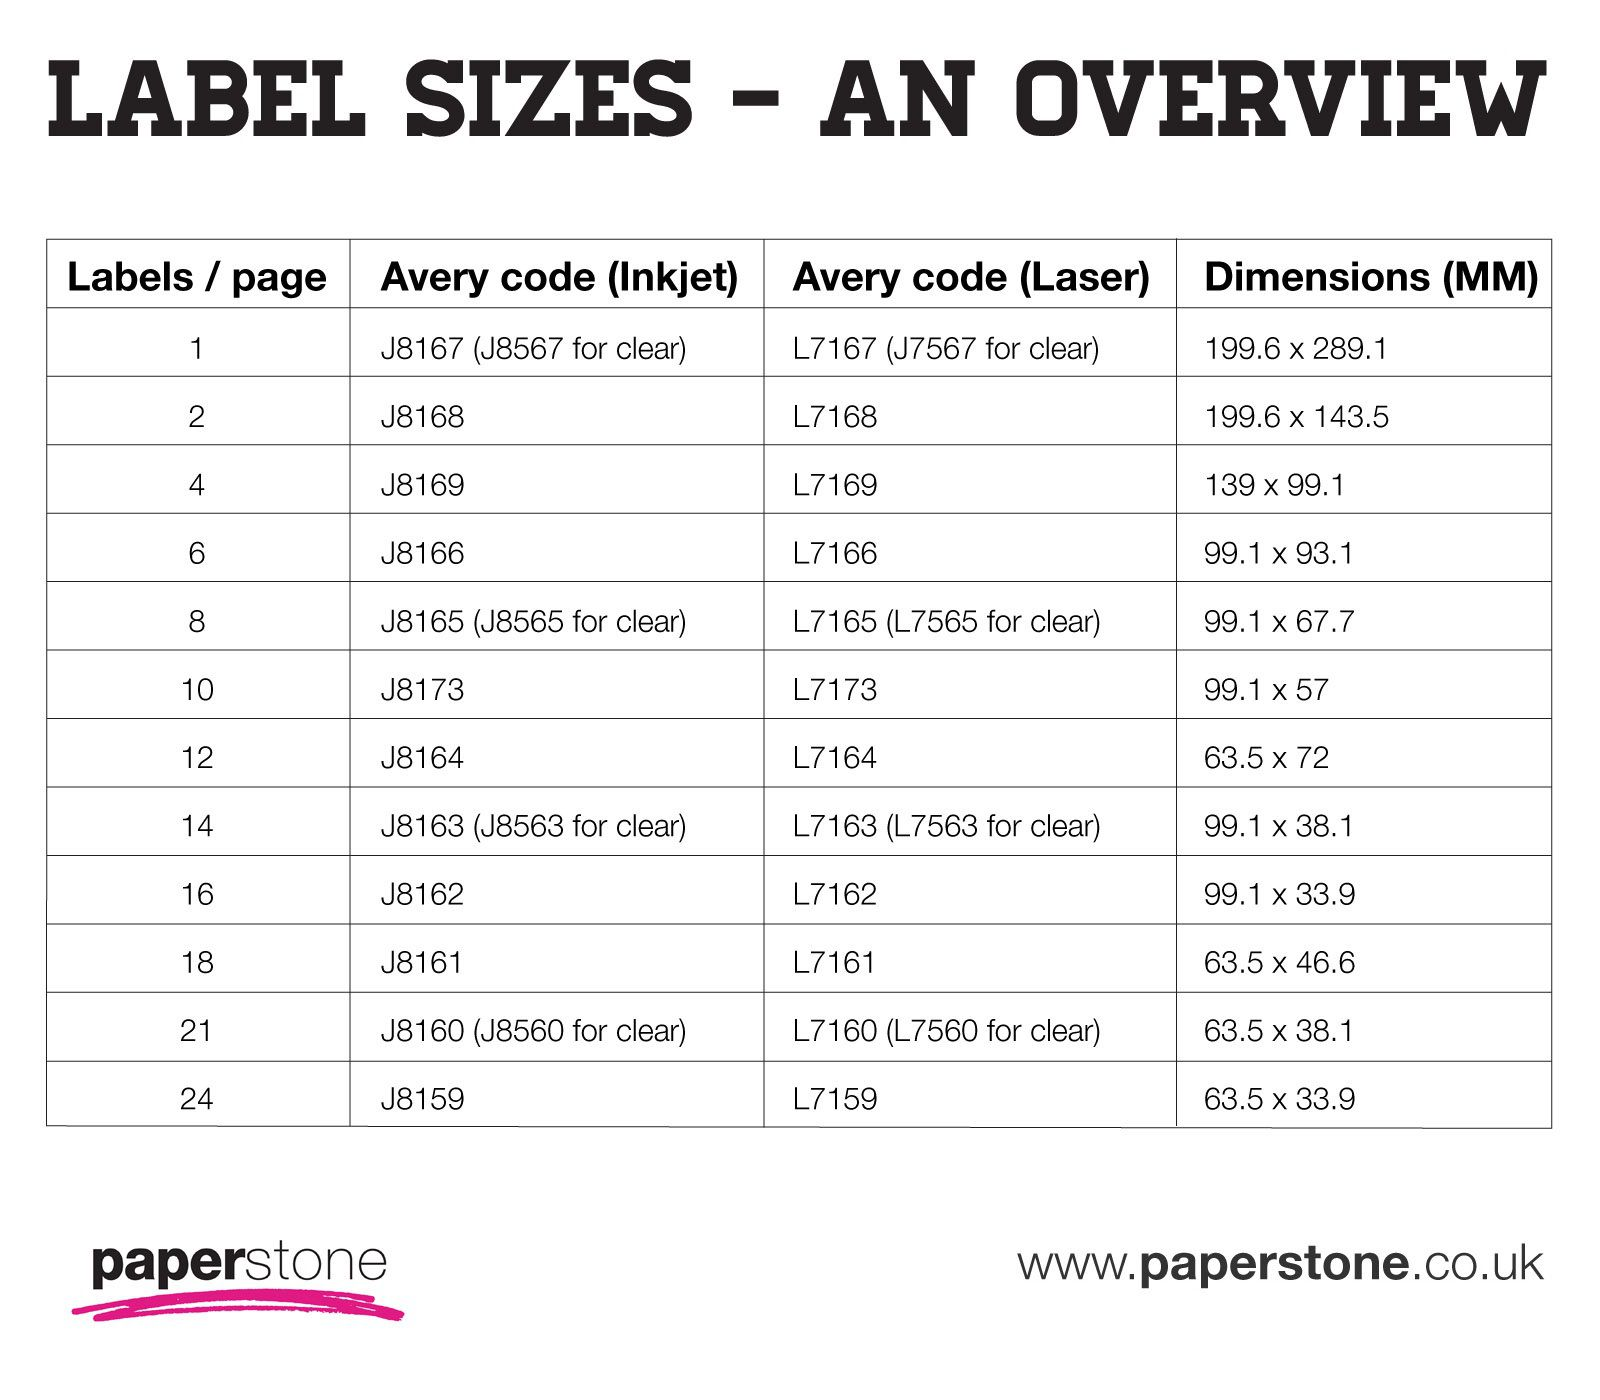 001 Archaicawful Avery Label Template In Word High Def  5164 For Mac Big Tab 8 2010Full